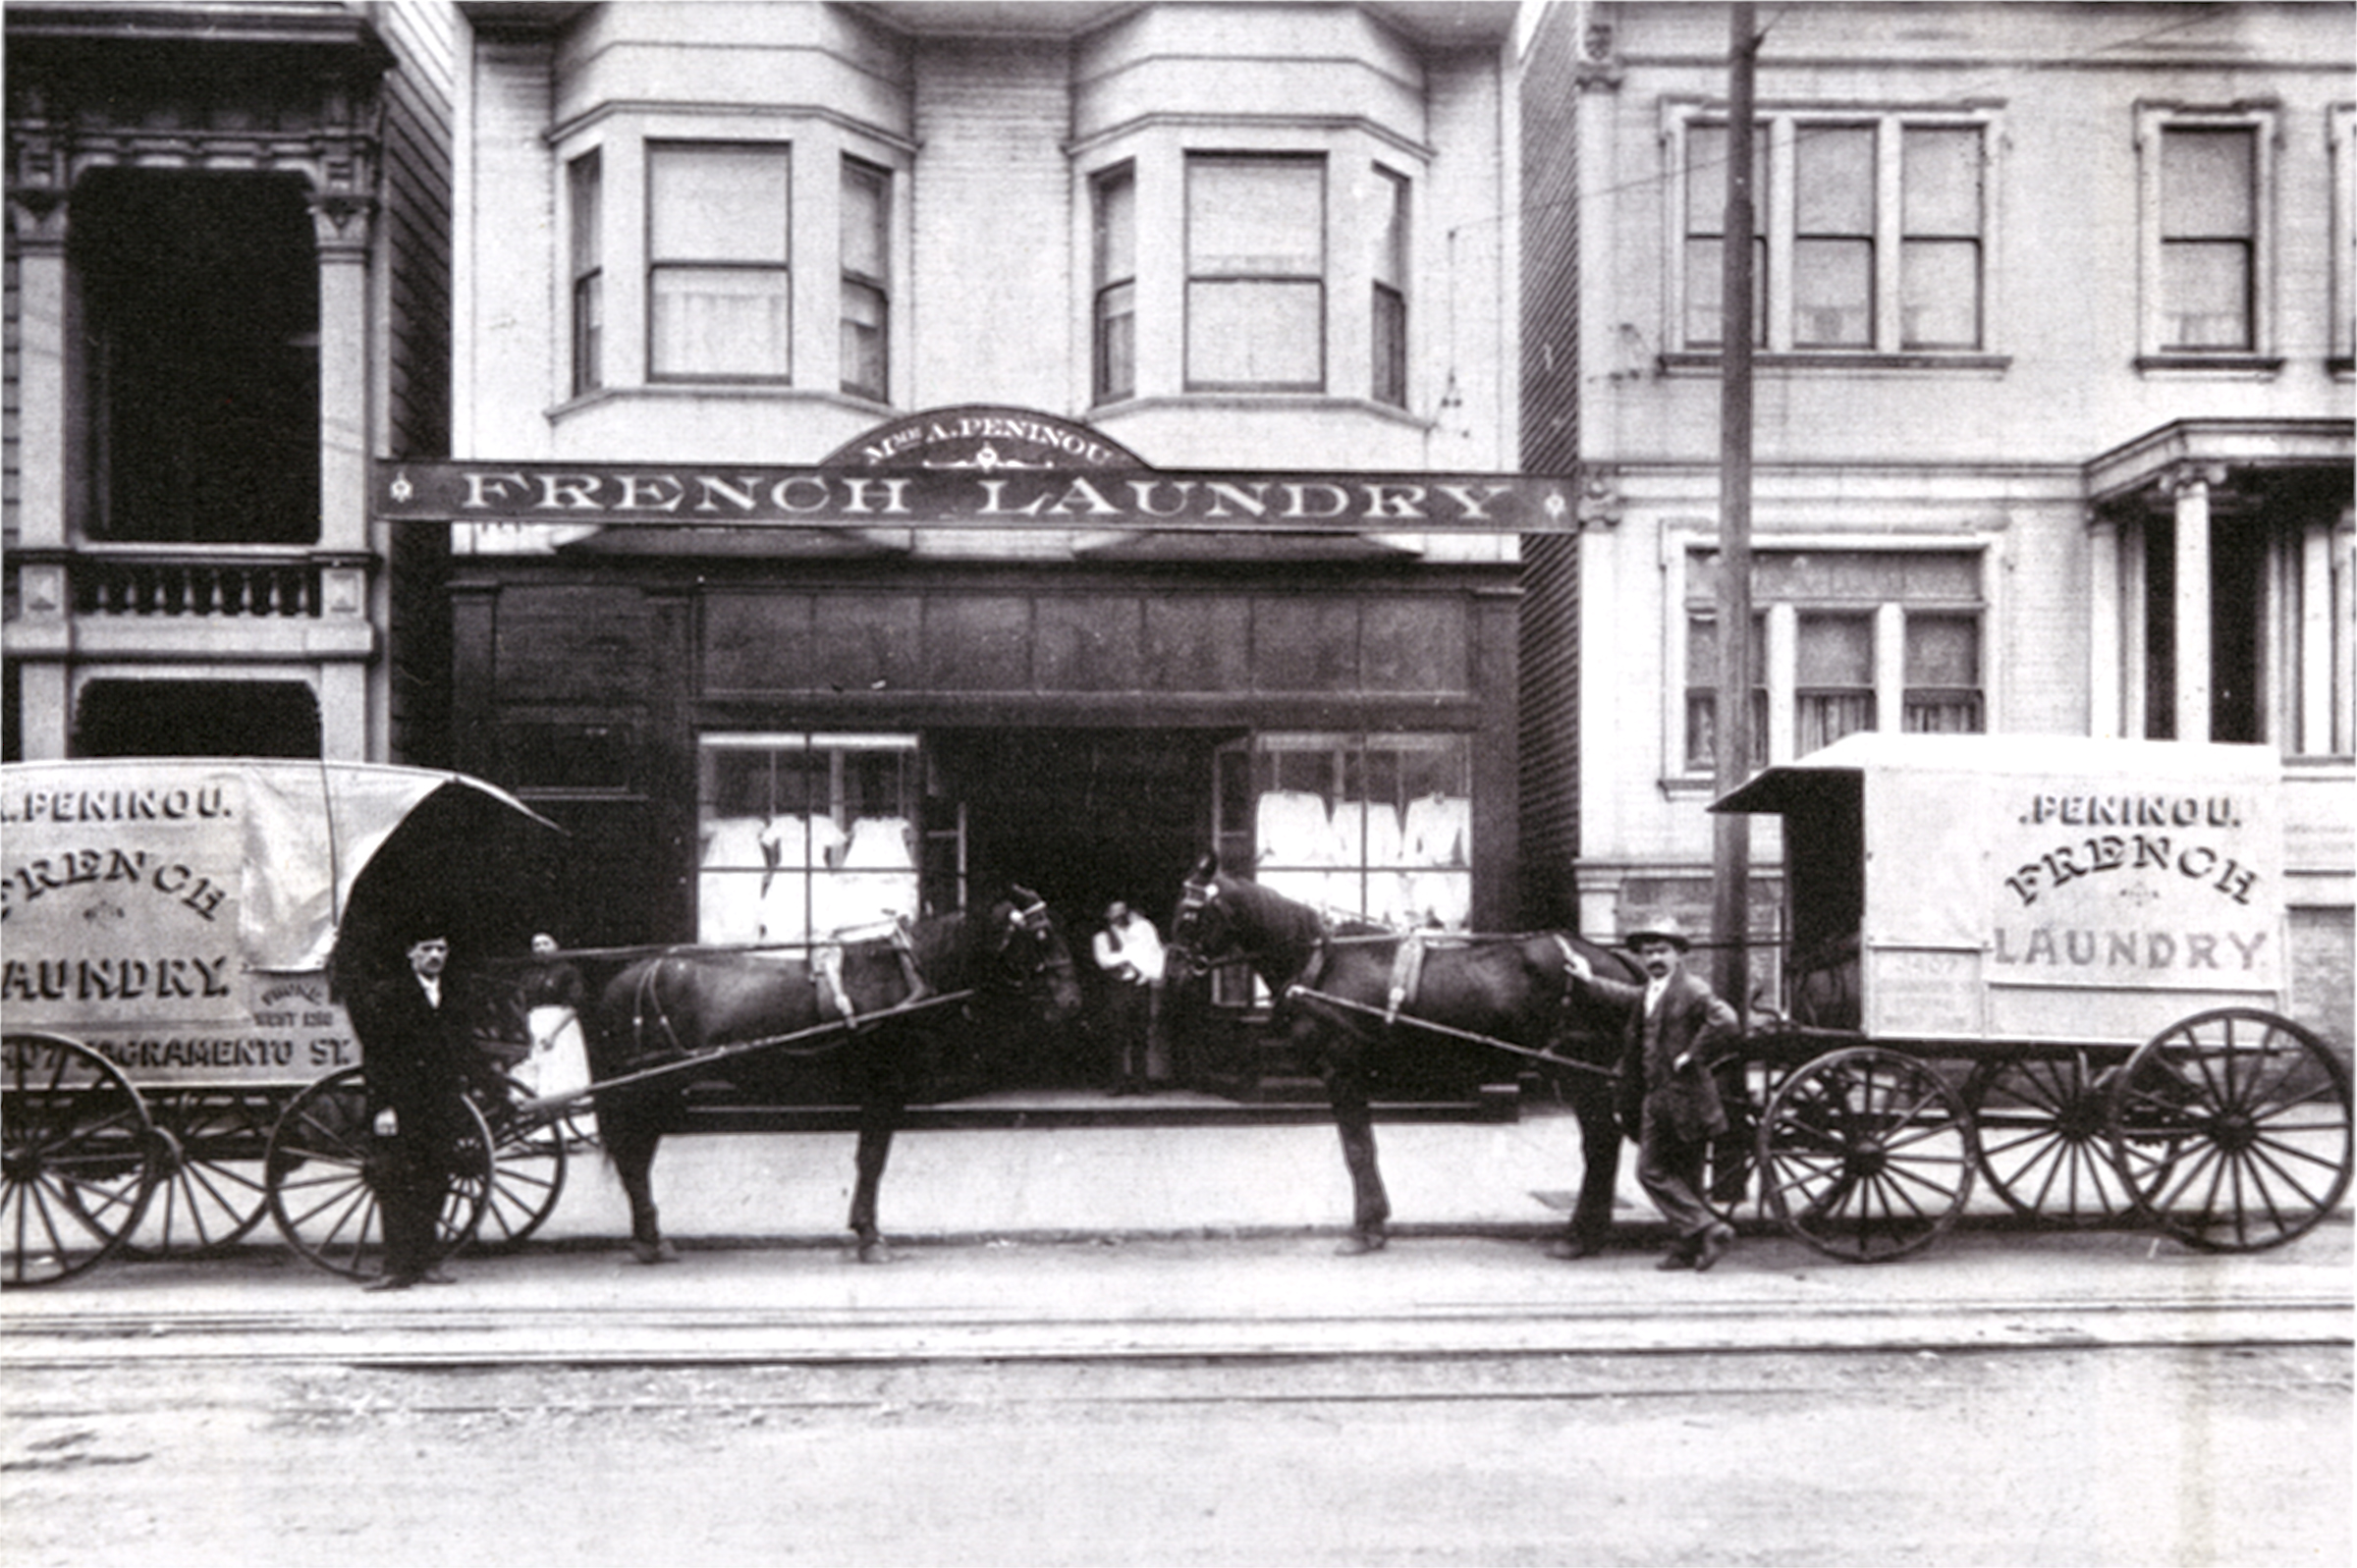 old store-horse and buggy_hires8x5.25.jpg